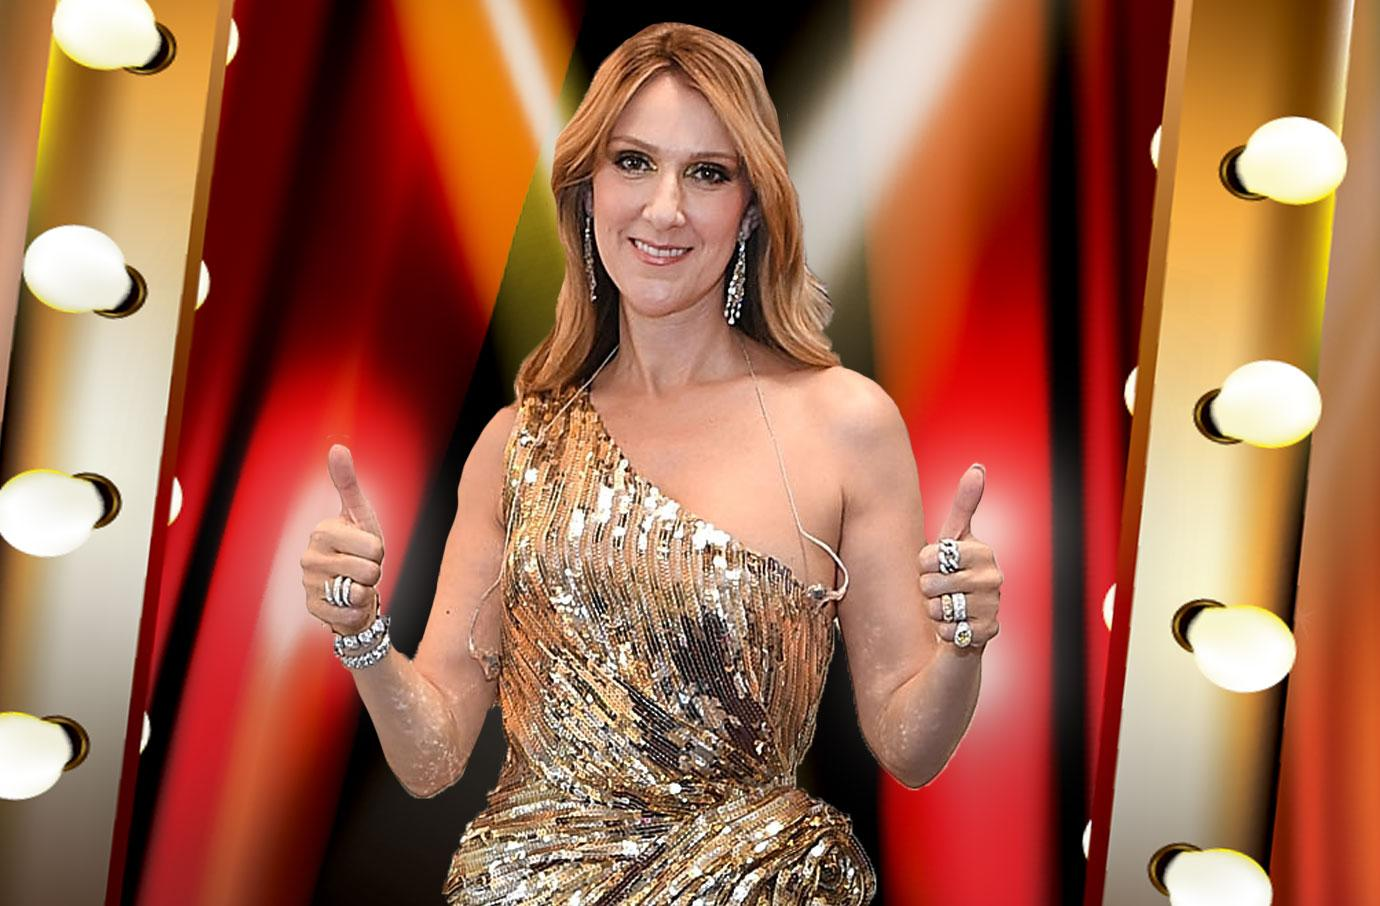 Celine Dion Strips Down Completely Naked Instagram Photo